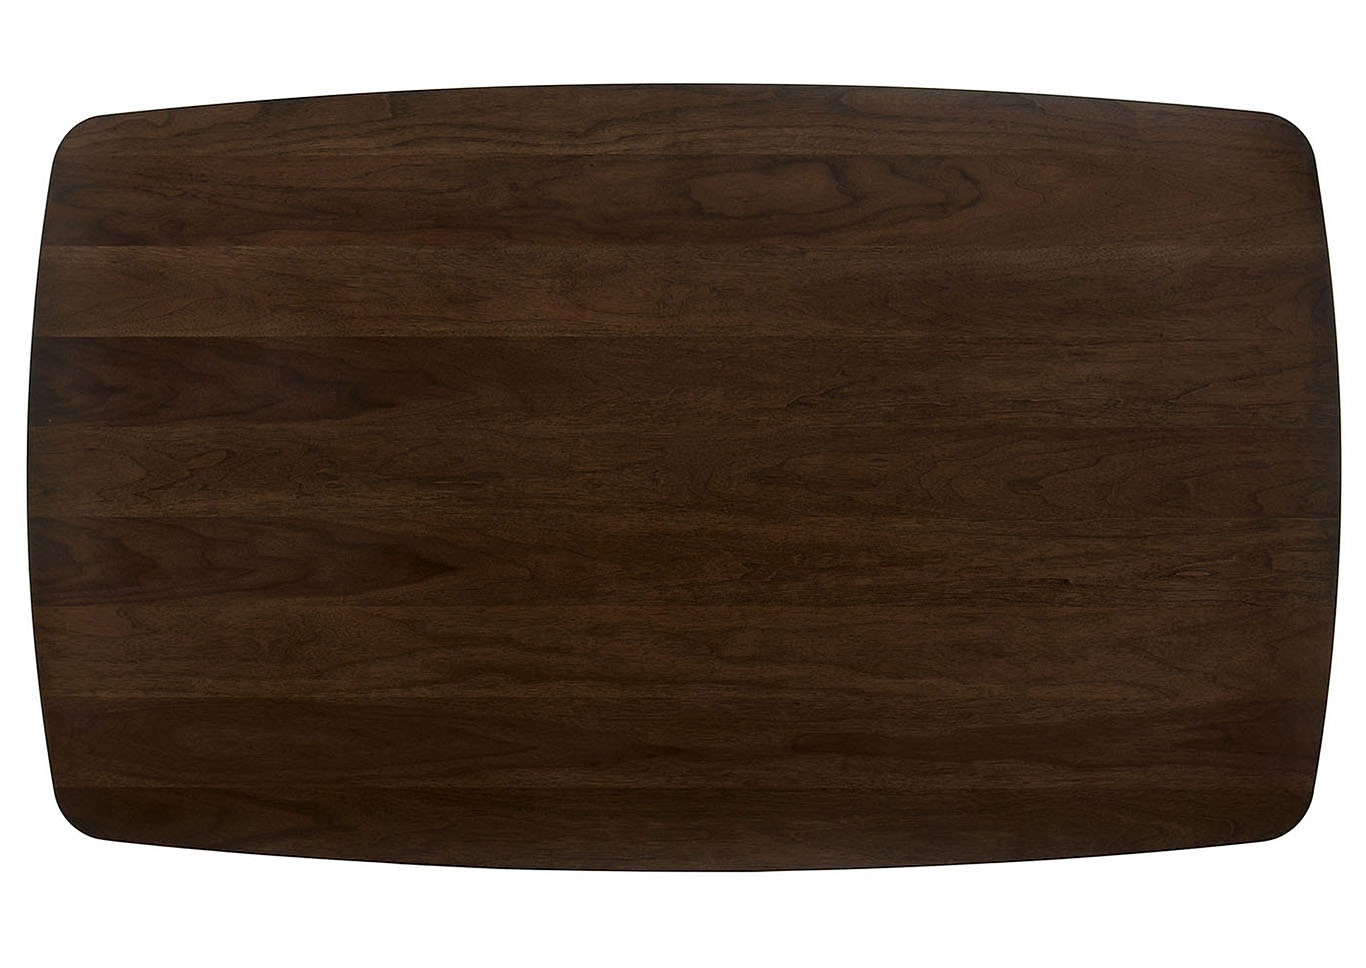 Shayna Gray Walnut Rectangular Dining Table,Furniture of America